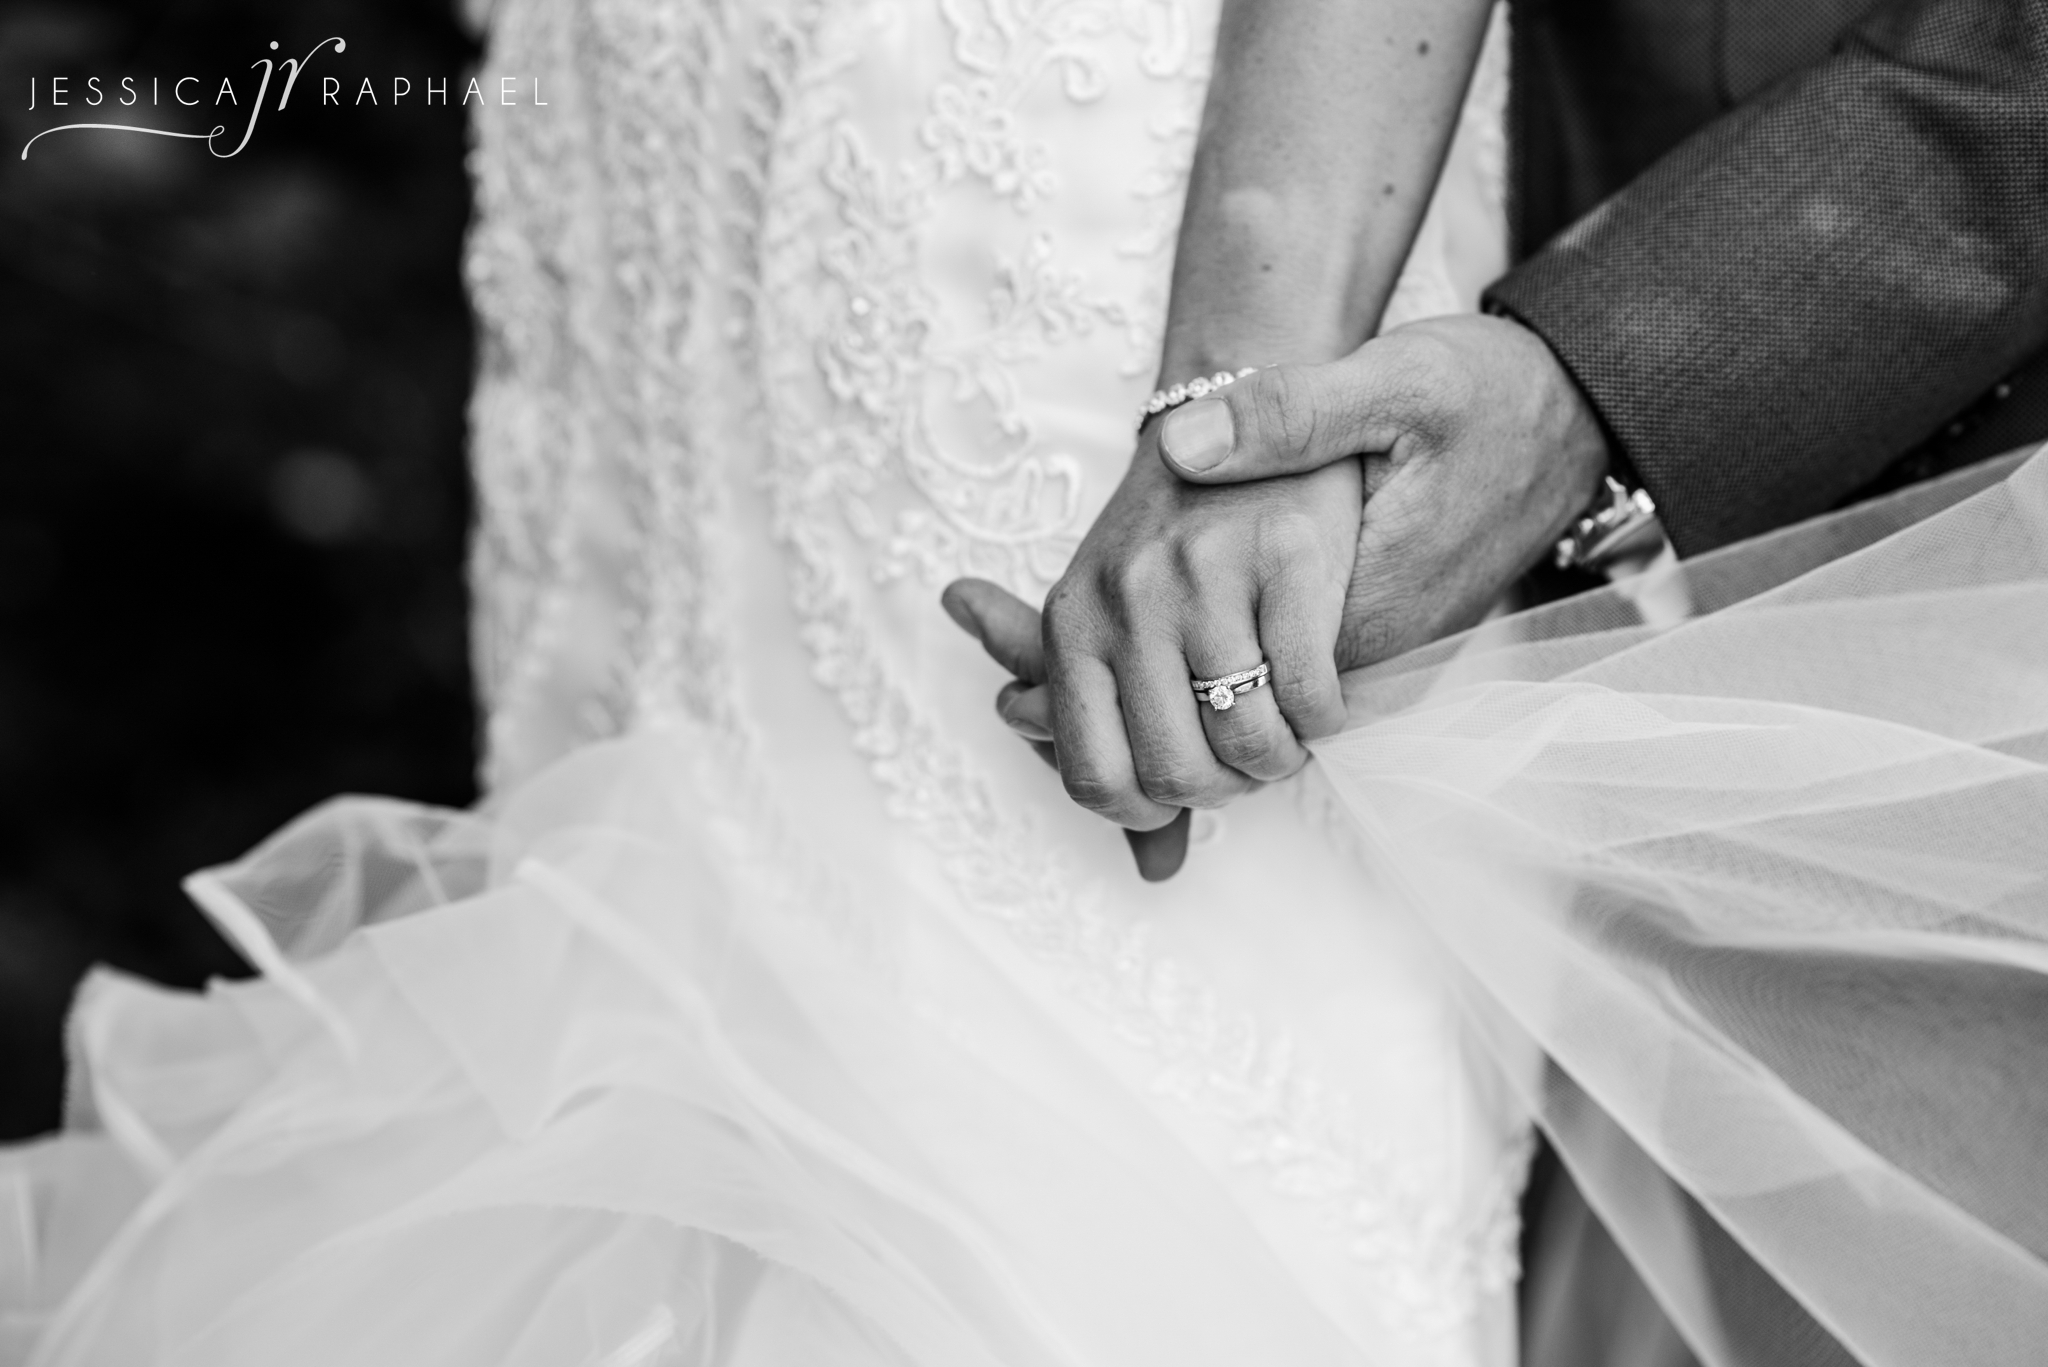 I only photograph hands when they are completely natural otherwise it looks cheesy & fake. I looked down & saw how gently they were holding hands & I just couldn't resist.